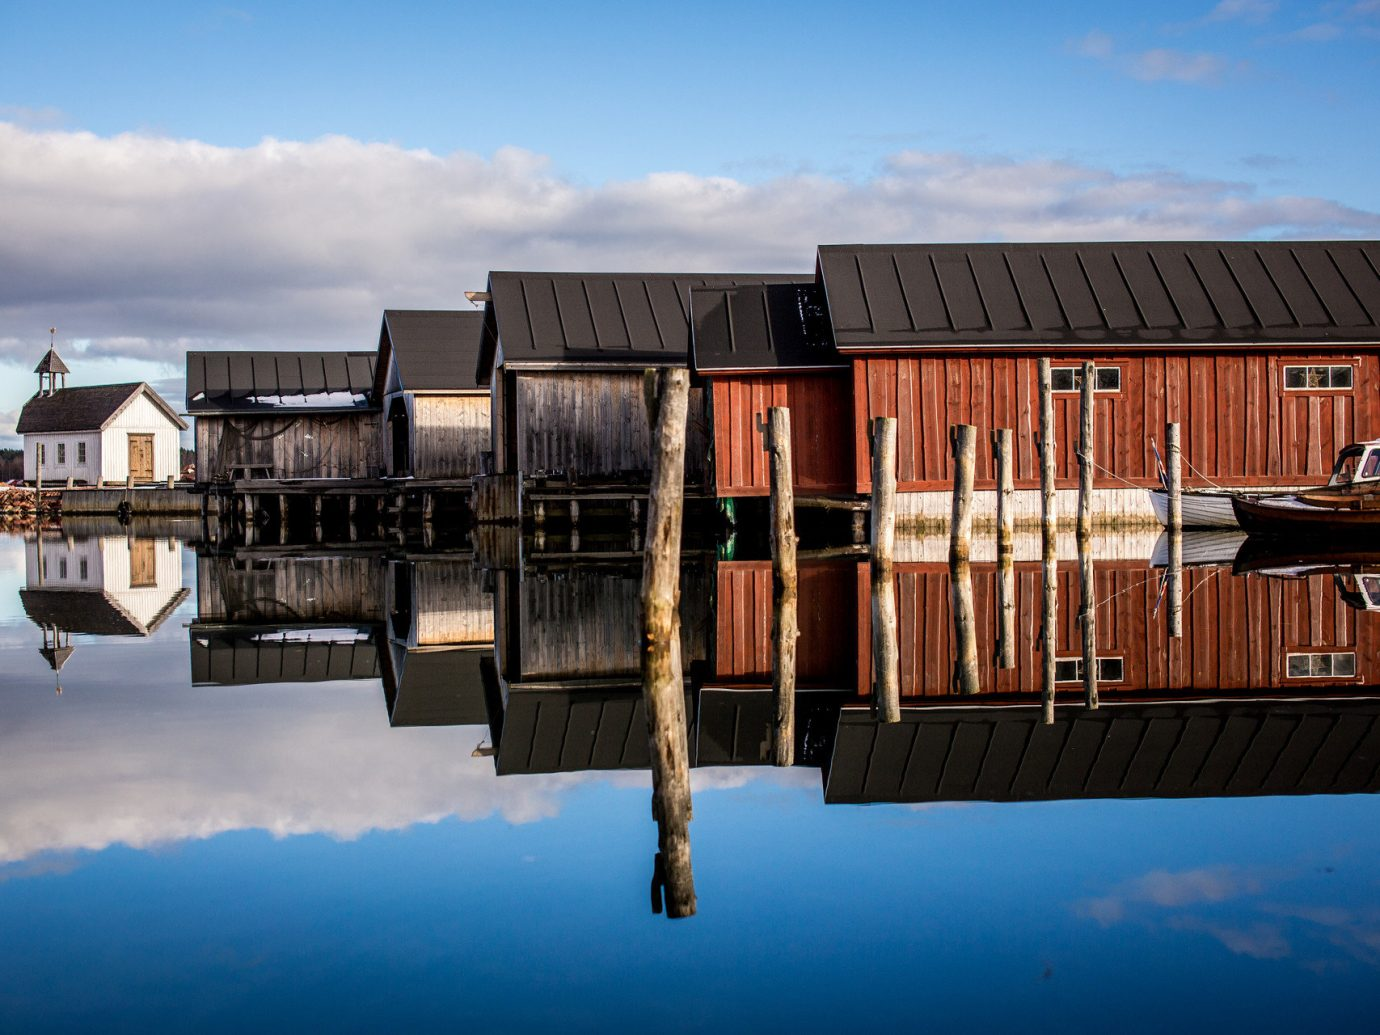 Finland Trip Ideas sky outdoor reflection house Architecture evening dock wood facade